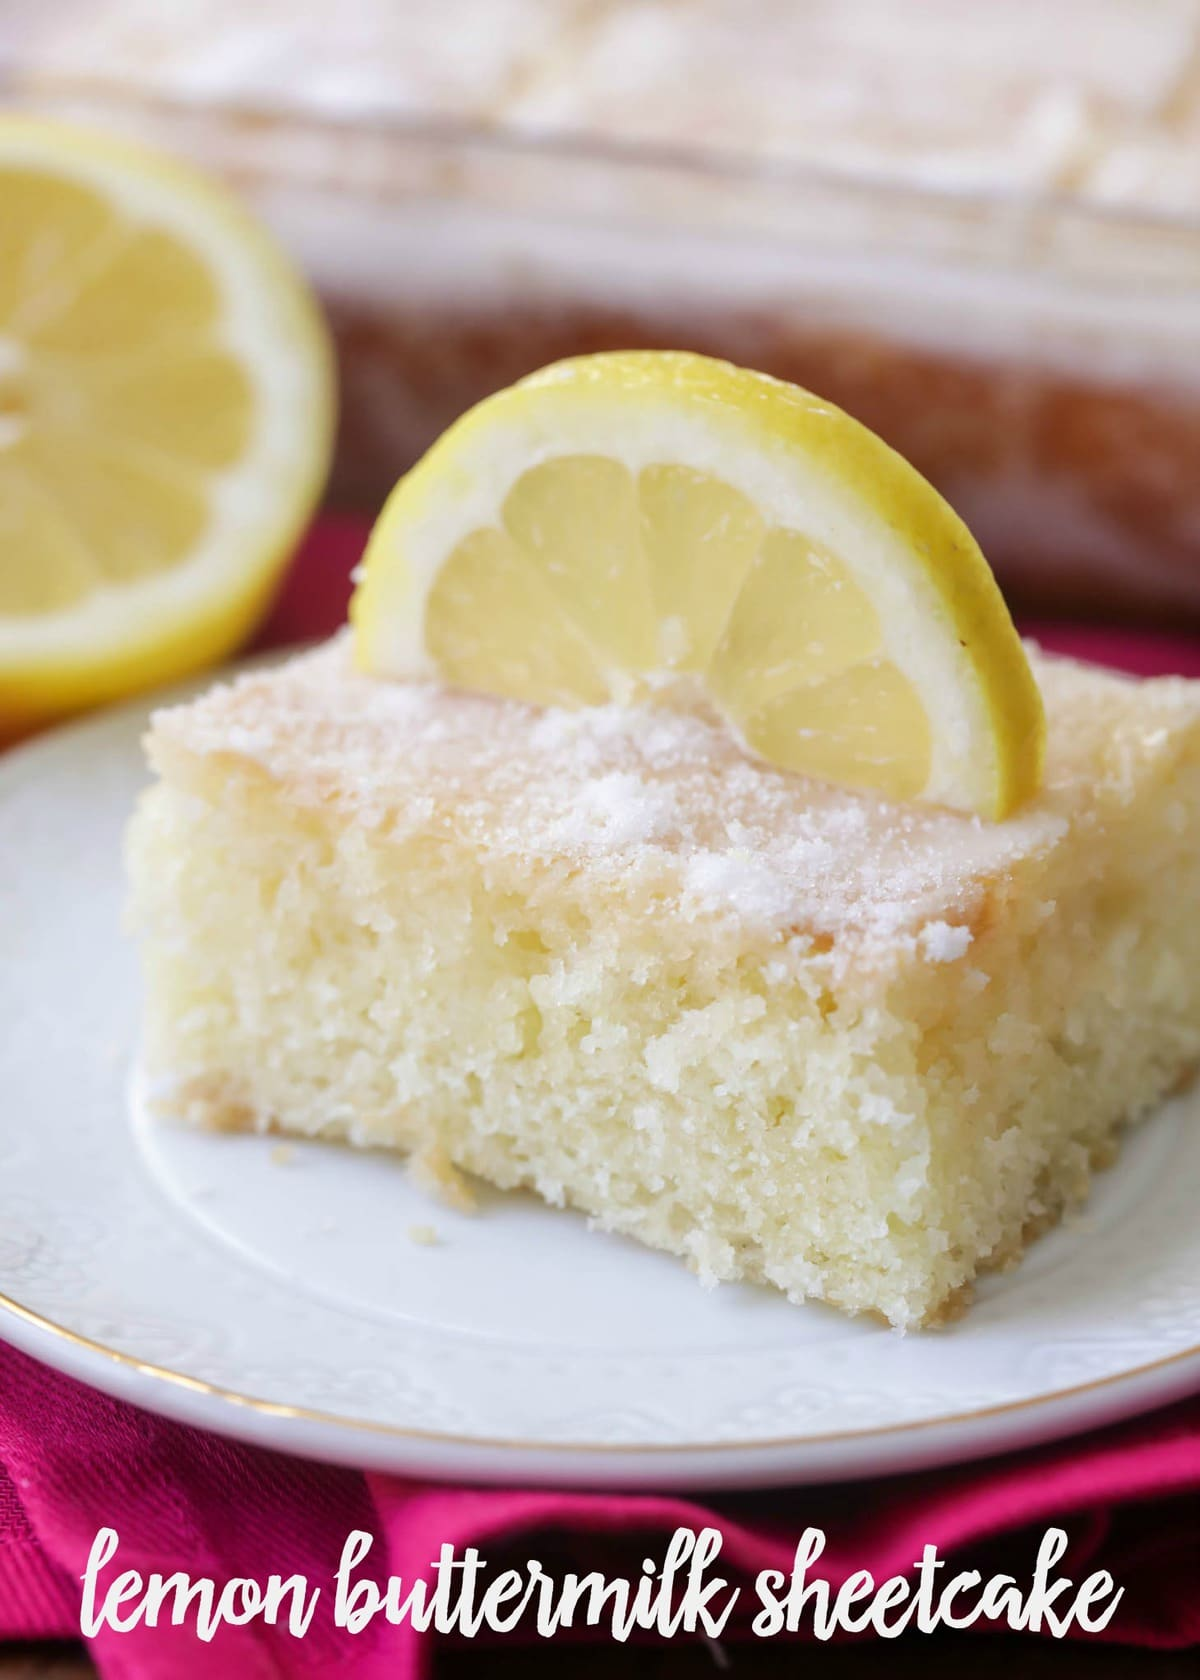 Lemon Cake - Sheet cake baked with a lemon zest, topped with a delicious lemony glaze! The perfect amount of lemon flavor - not too tart, but just enough to give you a delicious lemon taste!